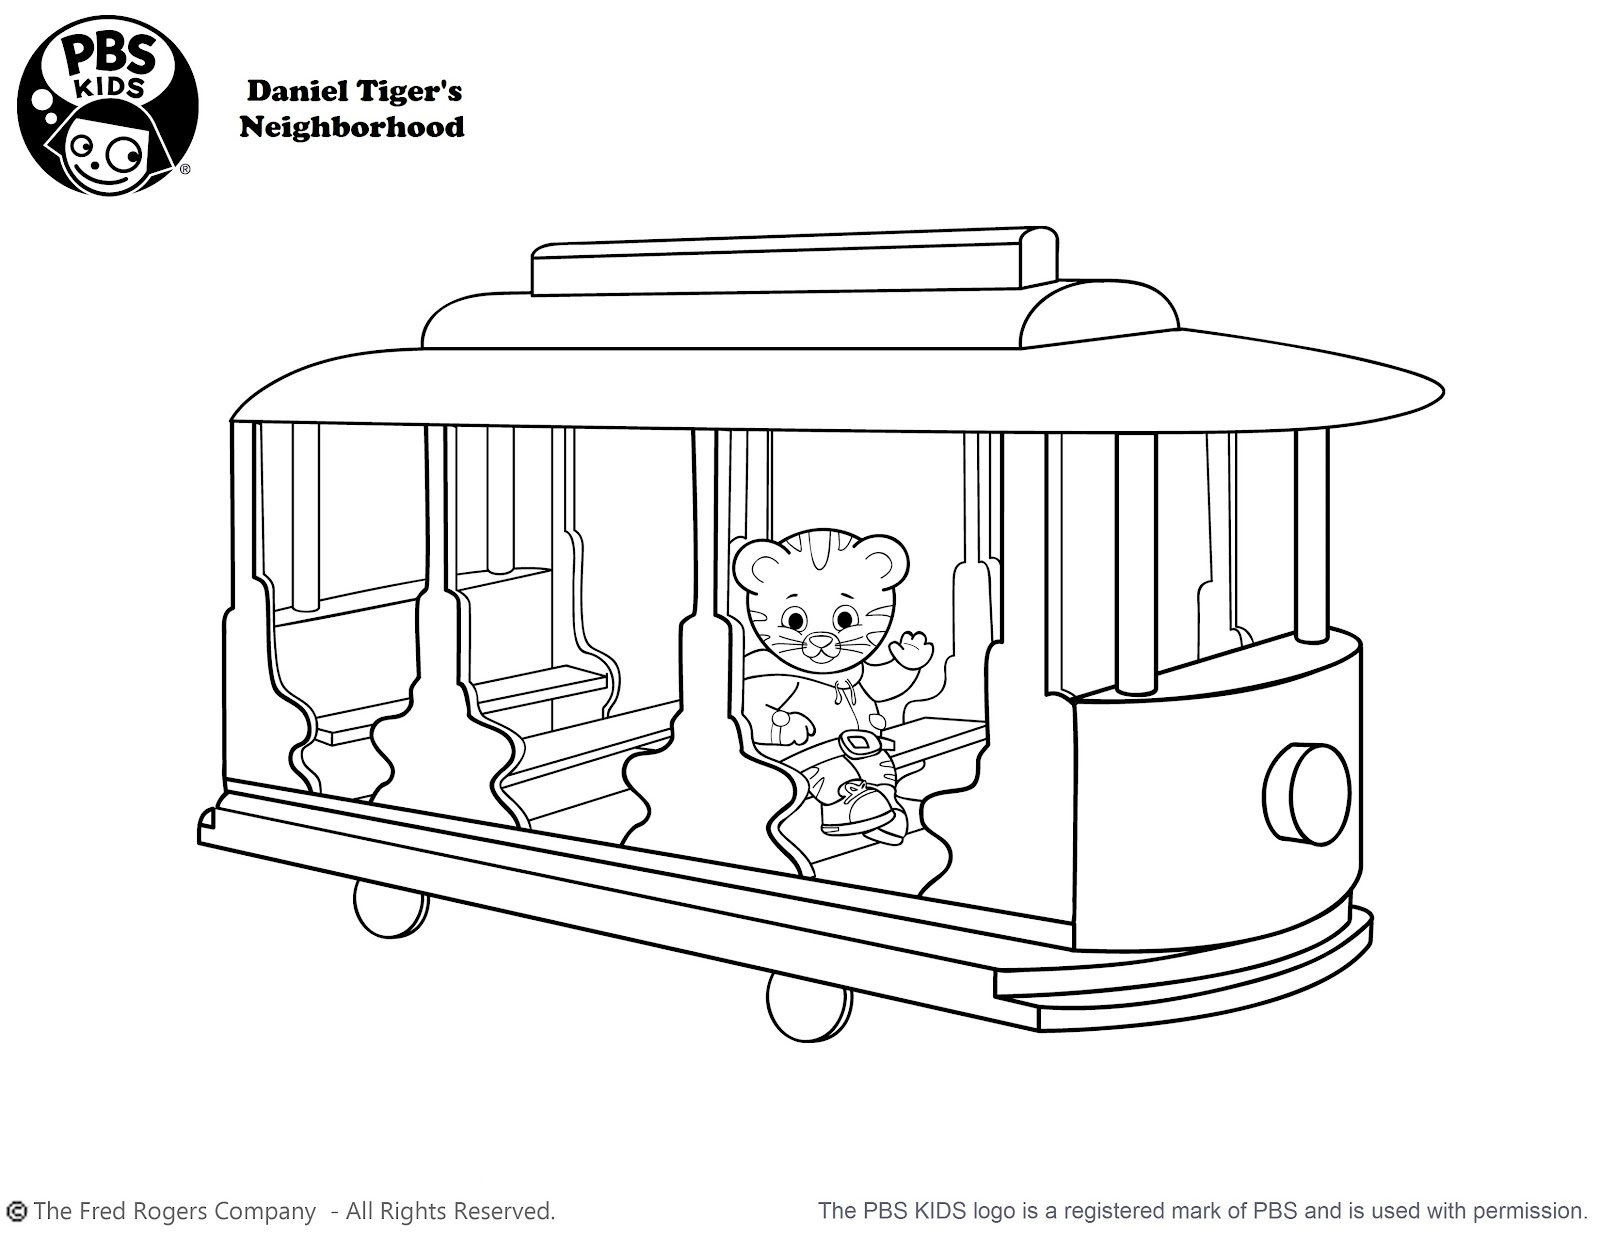 daniel tiger coloring page - daniel tigers neighborhood printable coloring pages